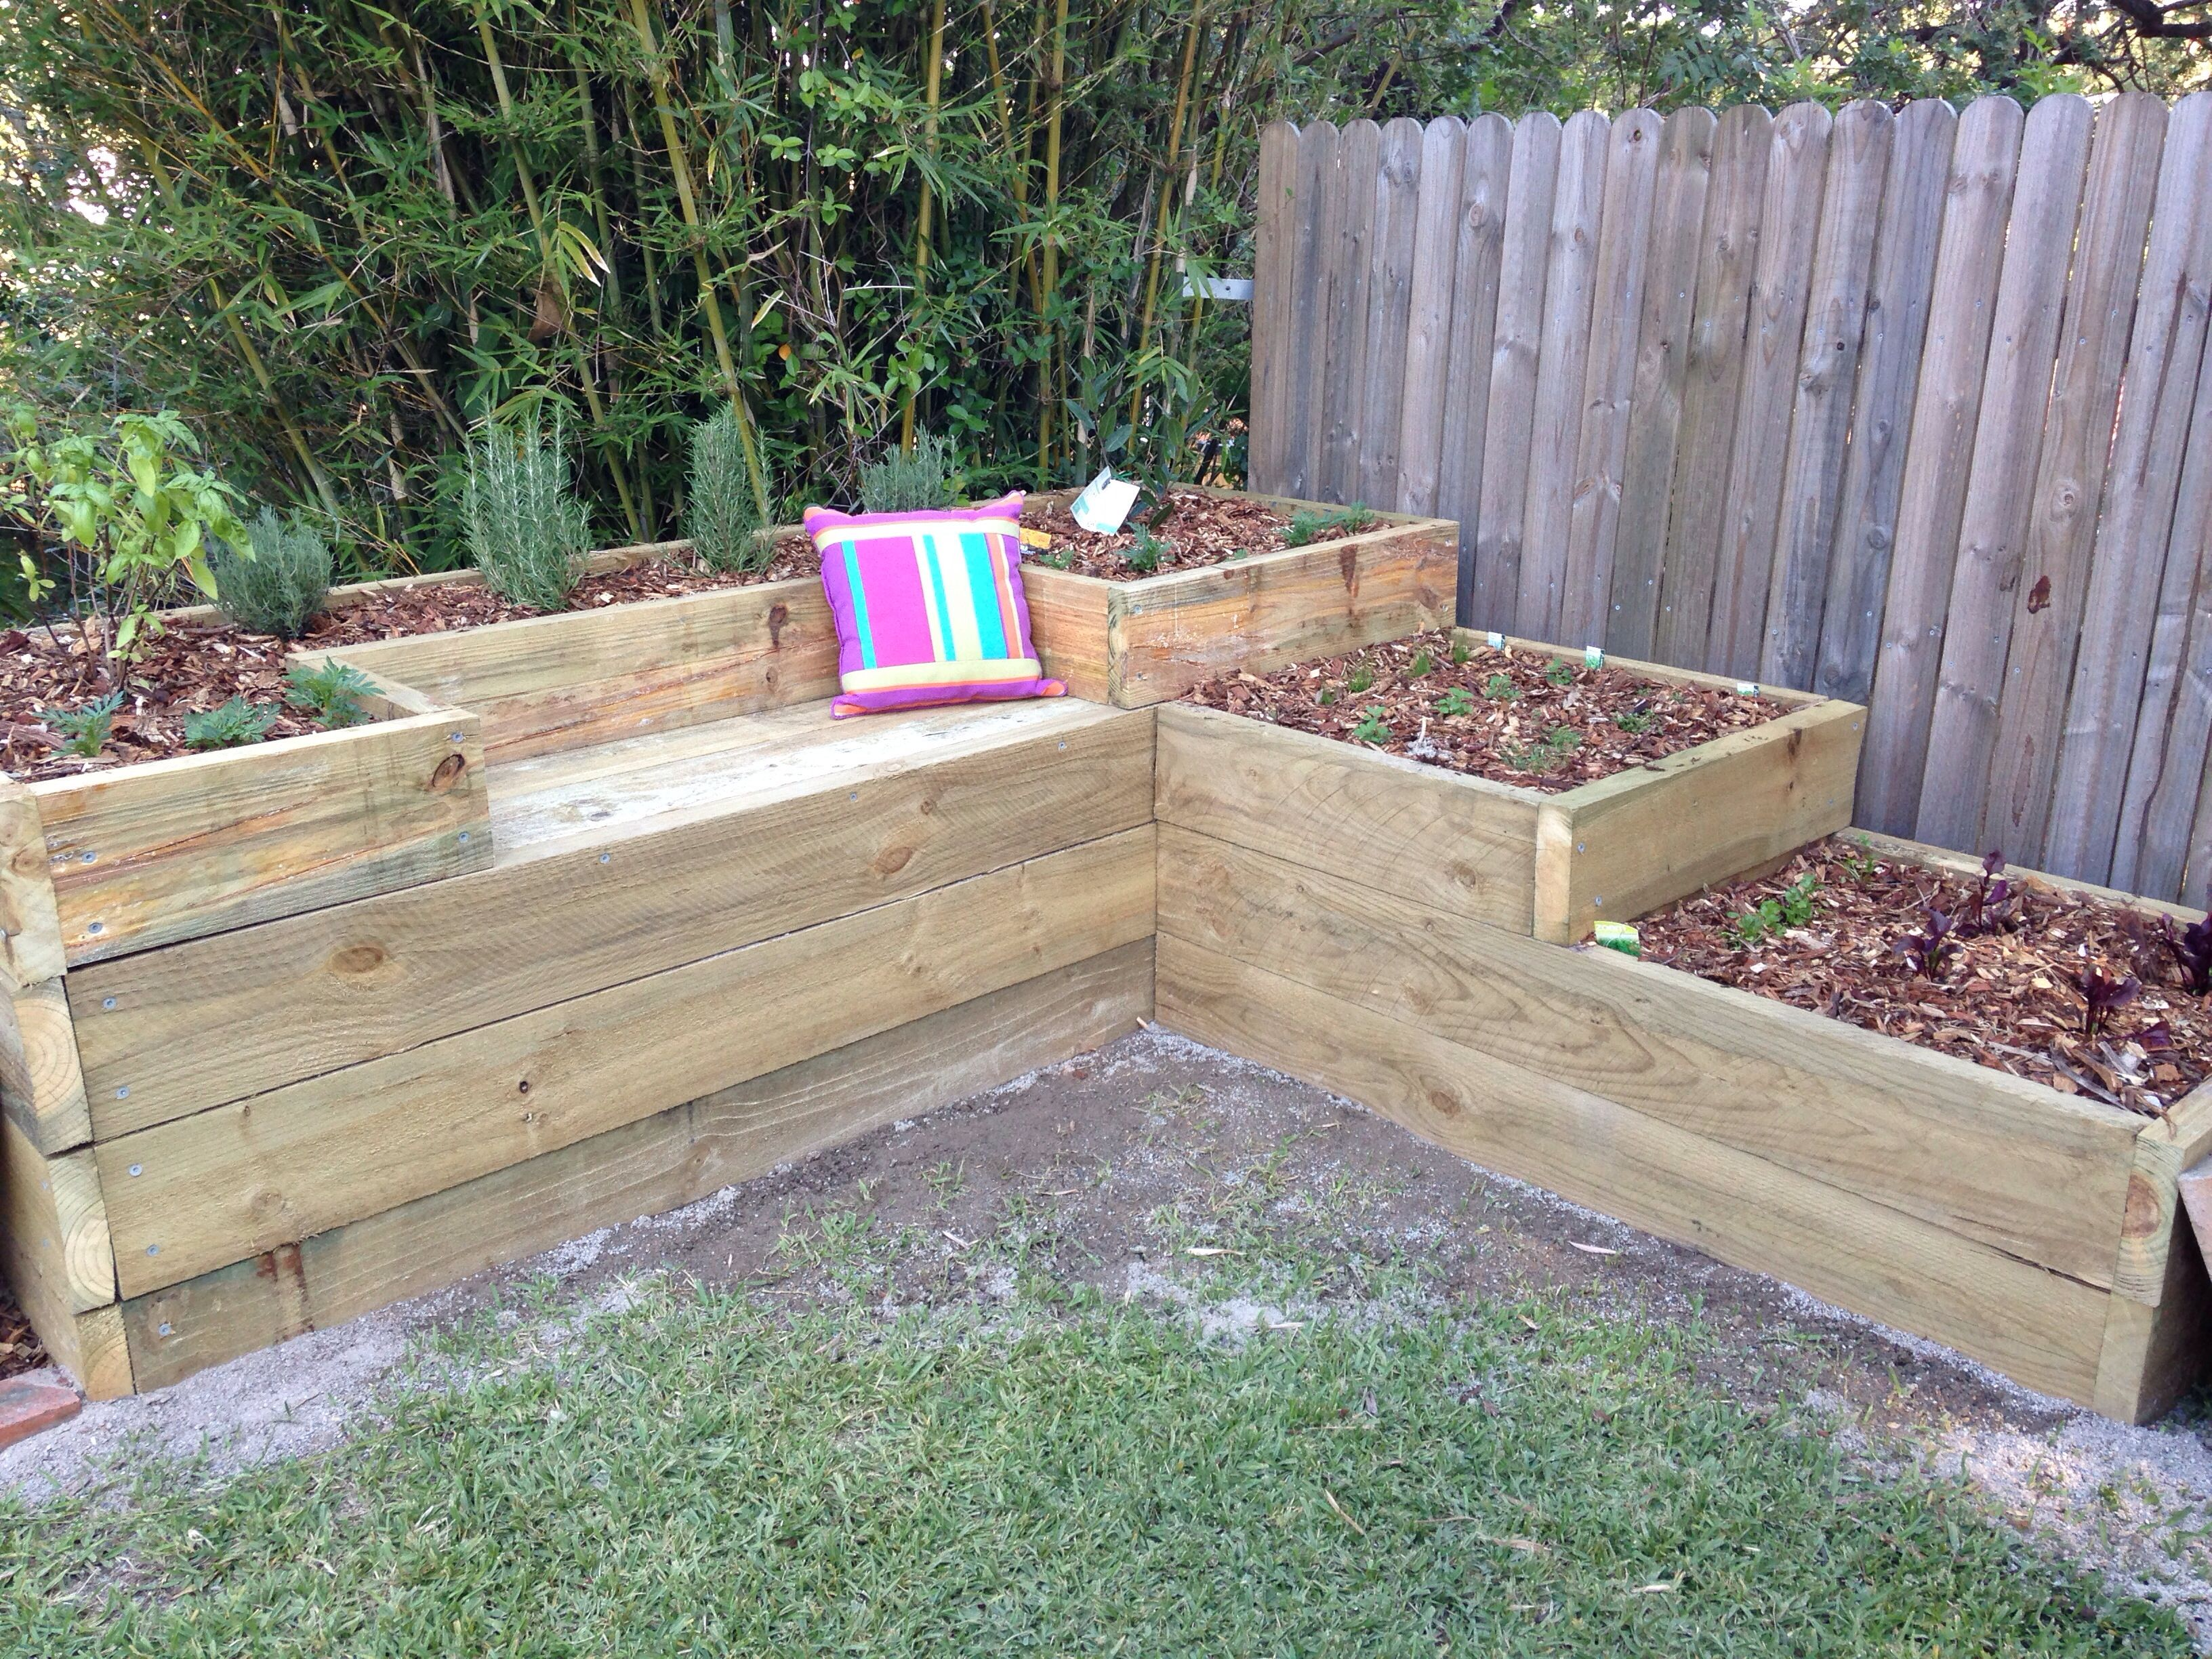 Rasied Garden Bed Vegetable And Herb Garden Built In Seat